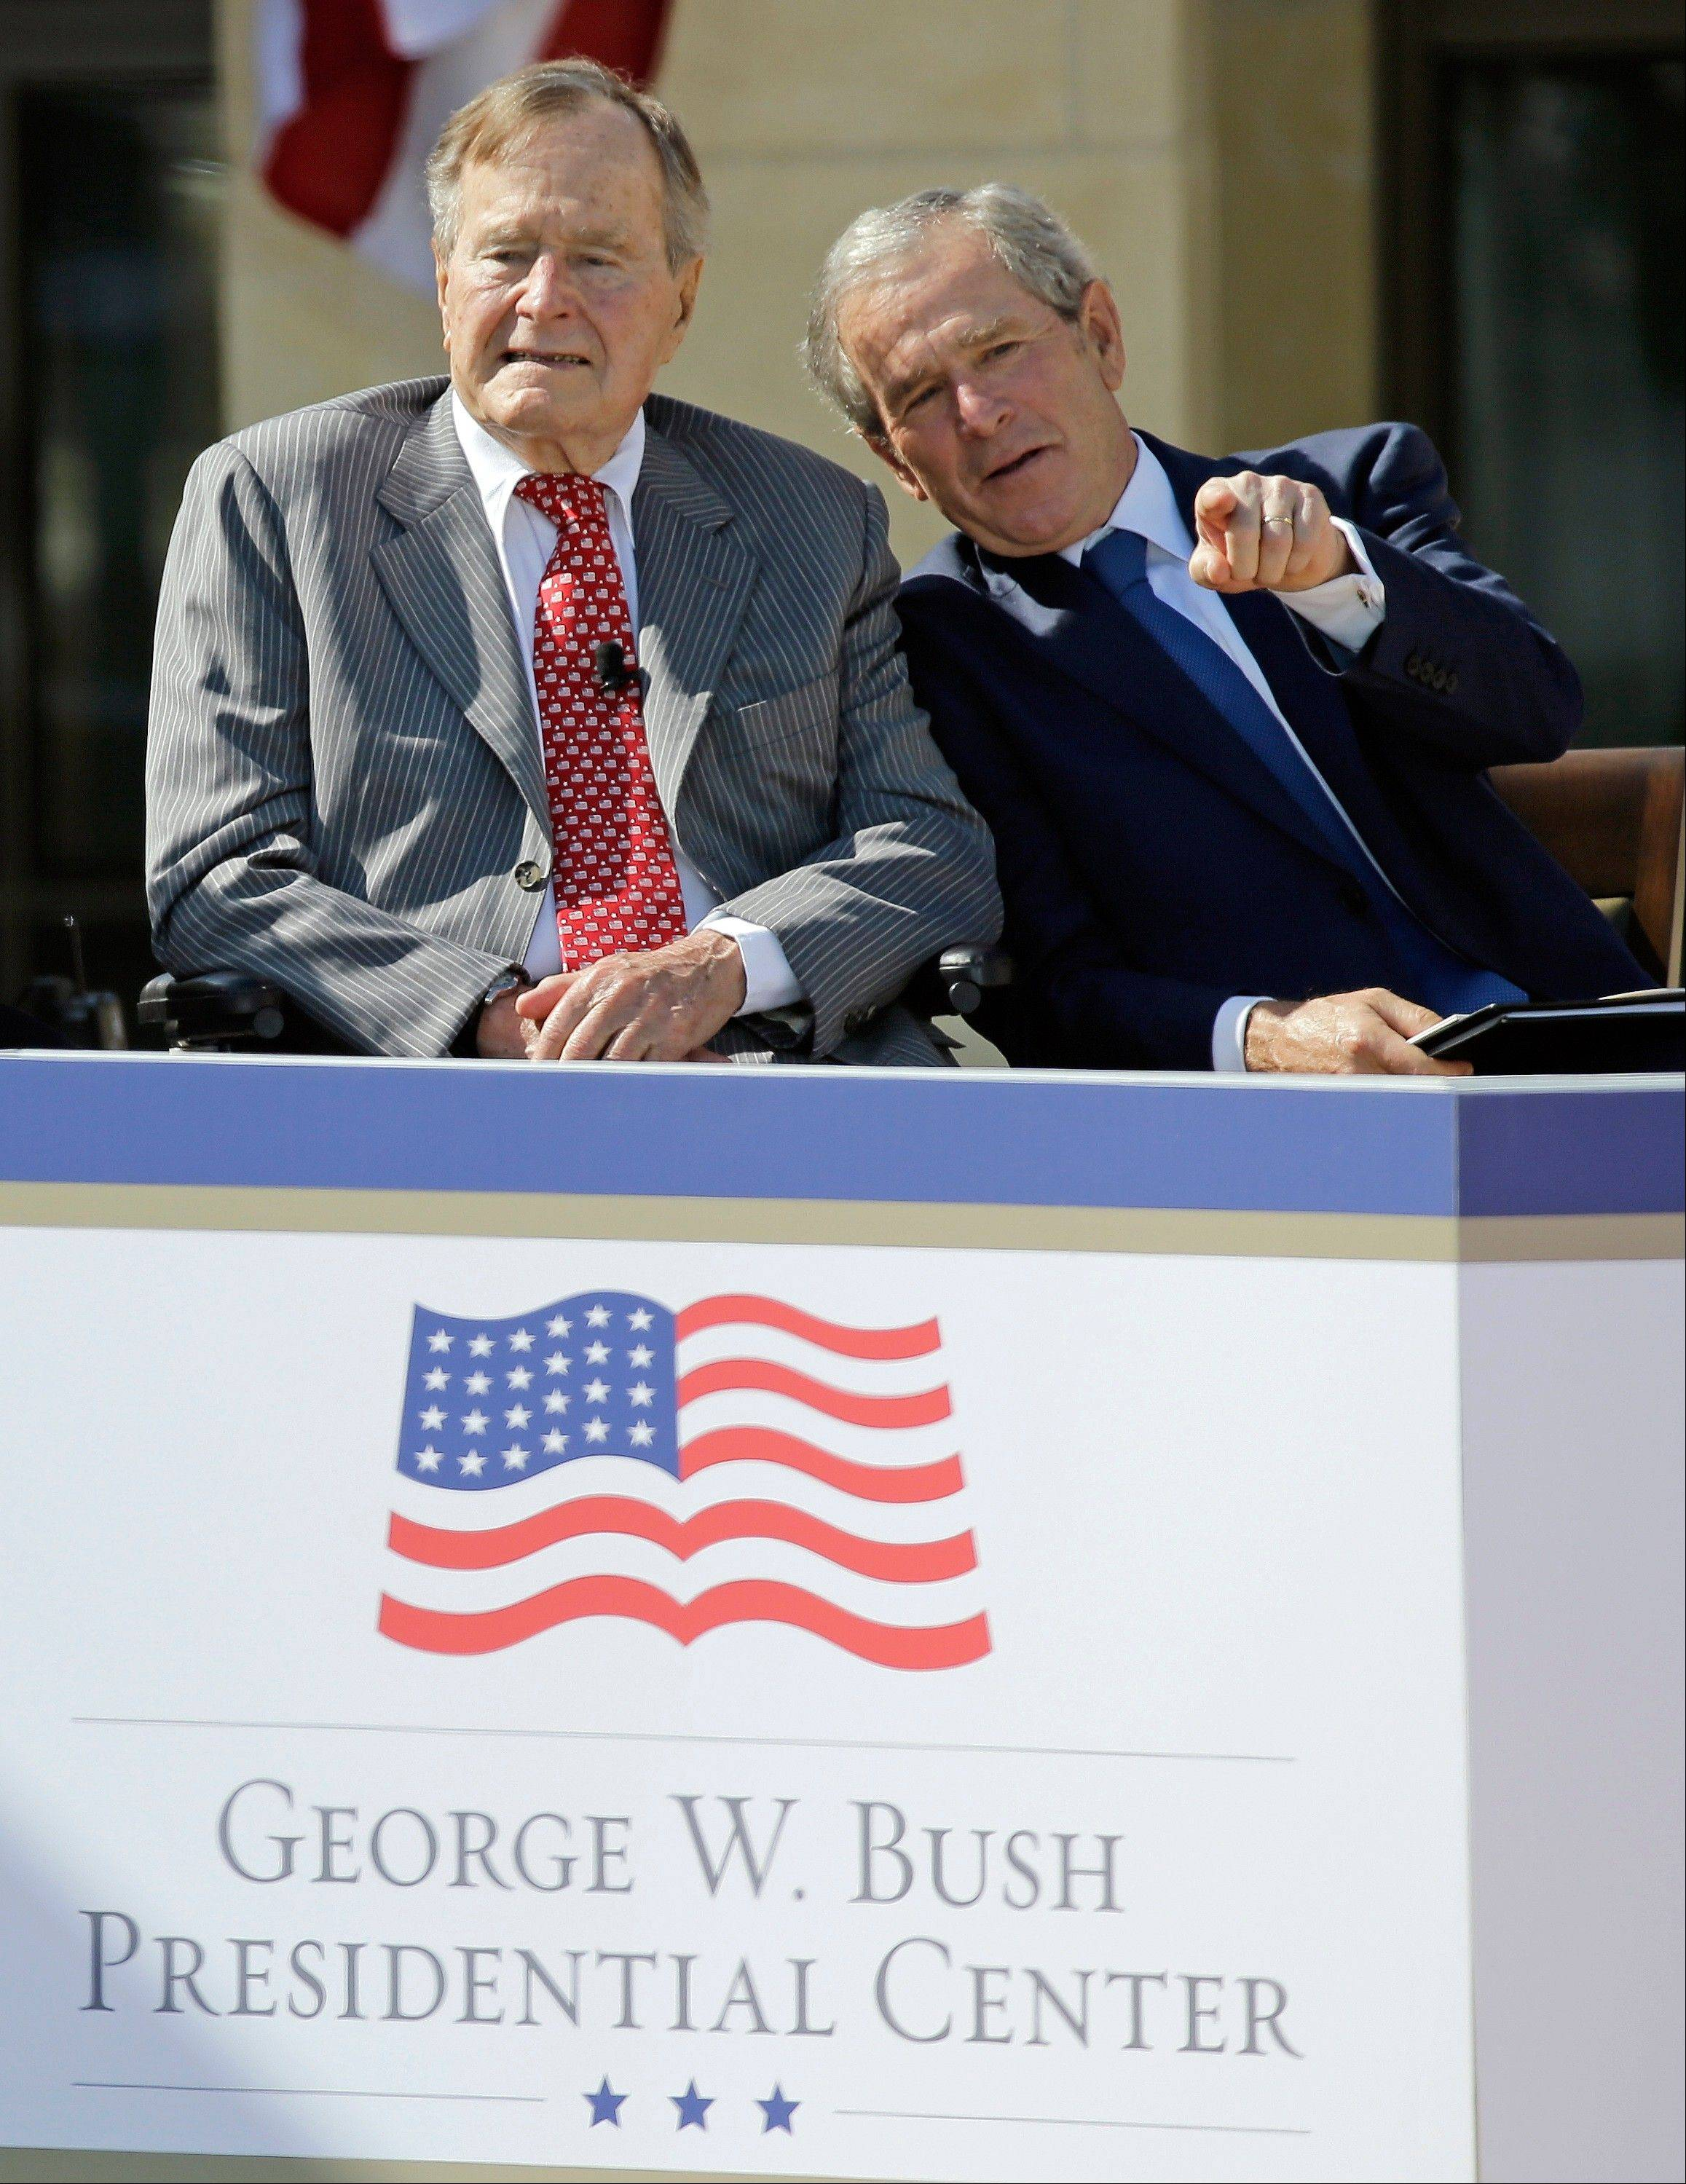 Former President George W. Bush talks with his father, former President George H.W. Bush, left, during the dedication of the George W. Bush Presidential Center, Thursday, April 25, 2013, in Dallas.